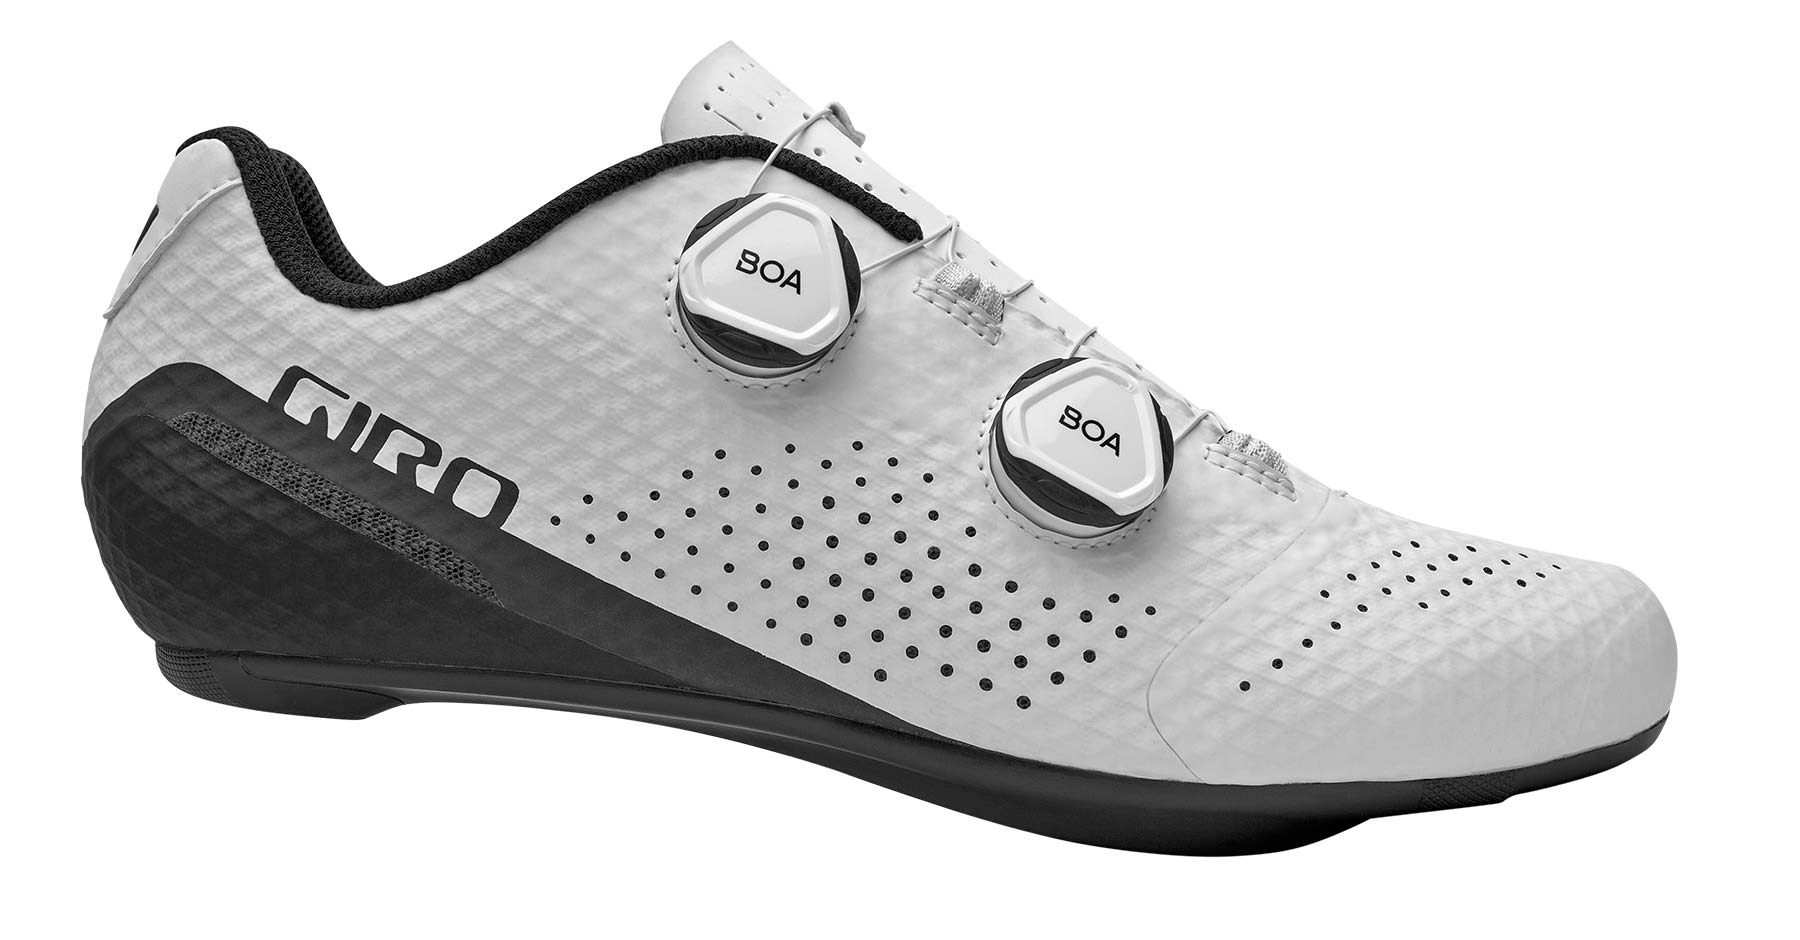 Giro Regime high performance road shoes at a mid-level price, white side